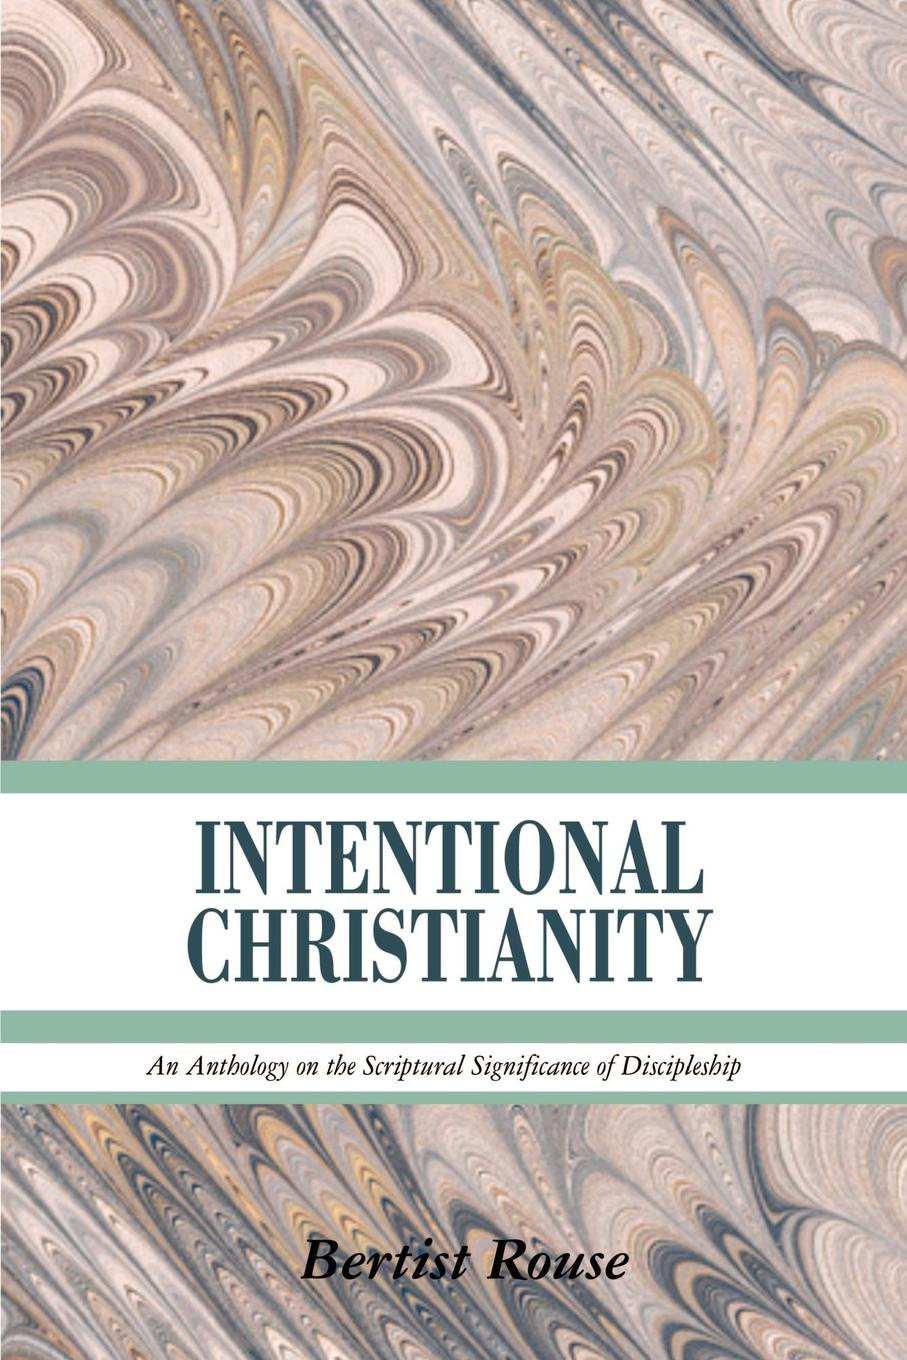 Bertist Rouse INTENTIONAL CHRISTIANITY. An Anthology on the Scriptural Significance of Discipleship